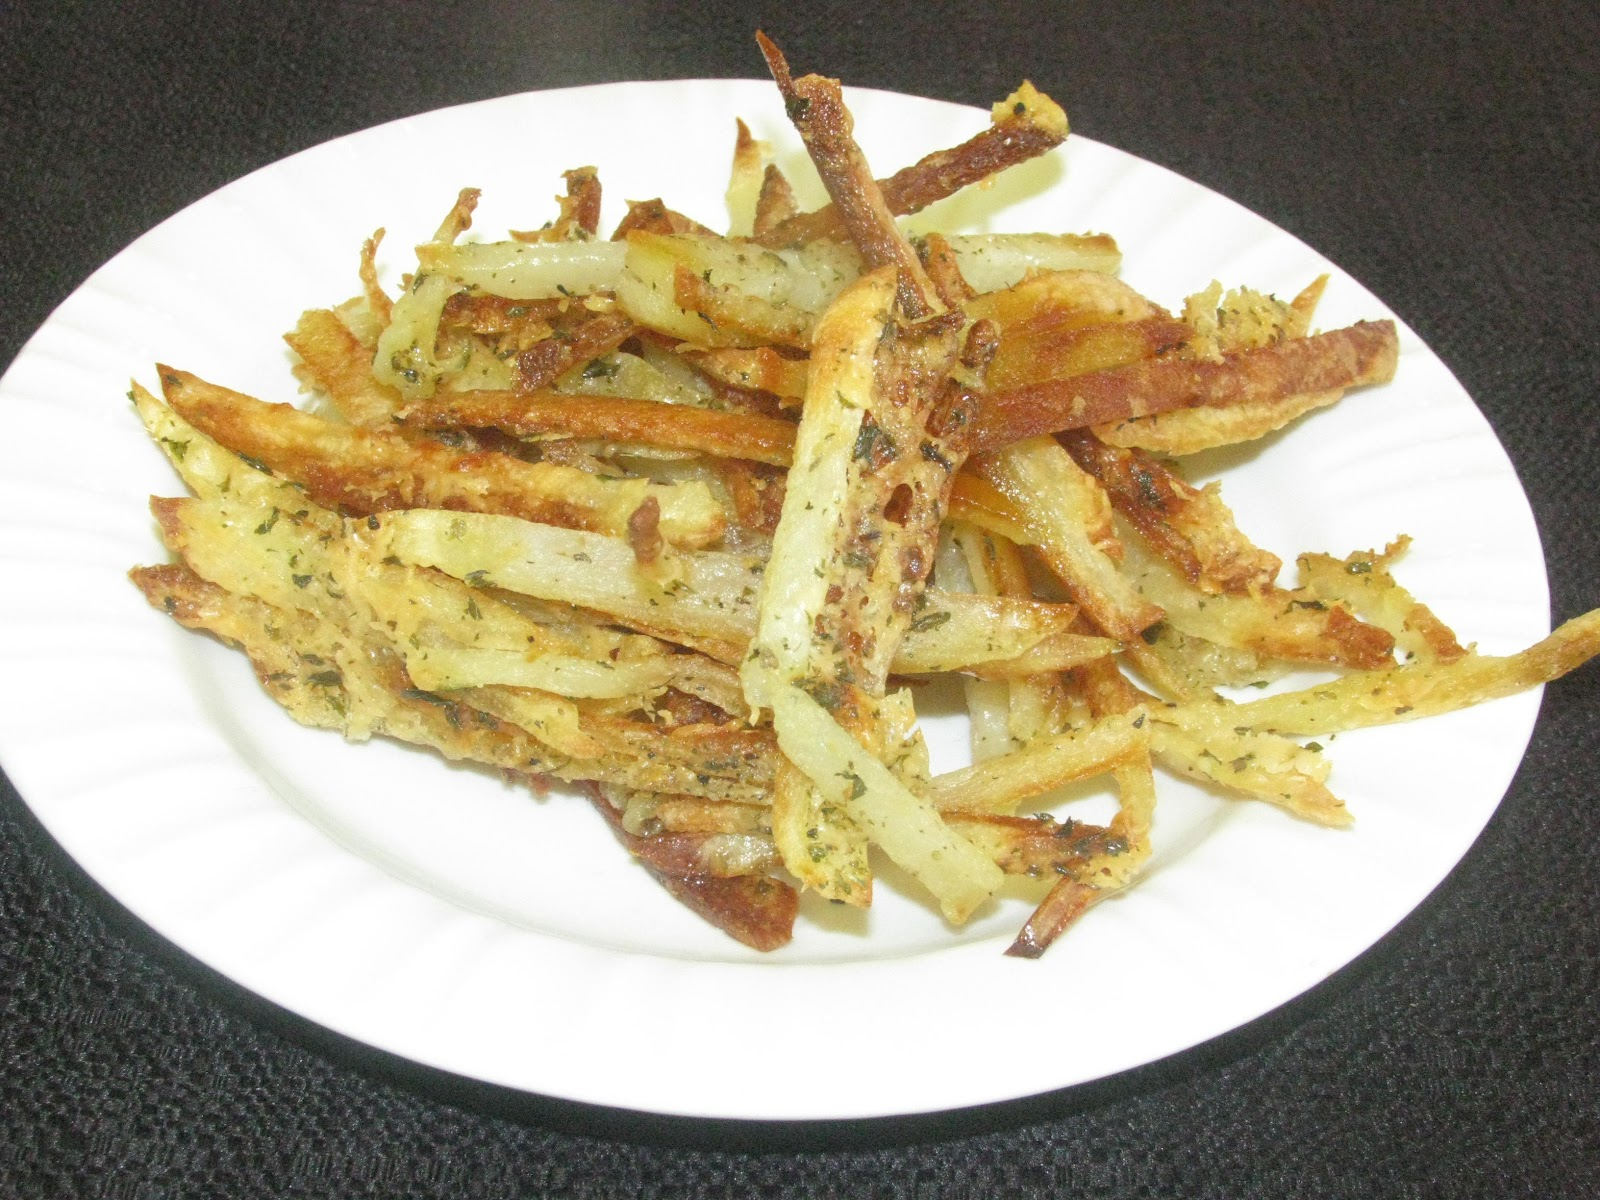 halles fries oven fries french fries feta fries fries eggplant fries ...